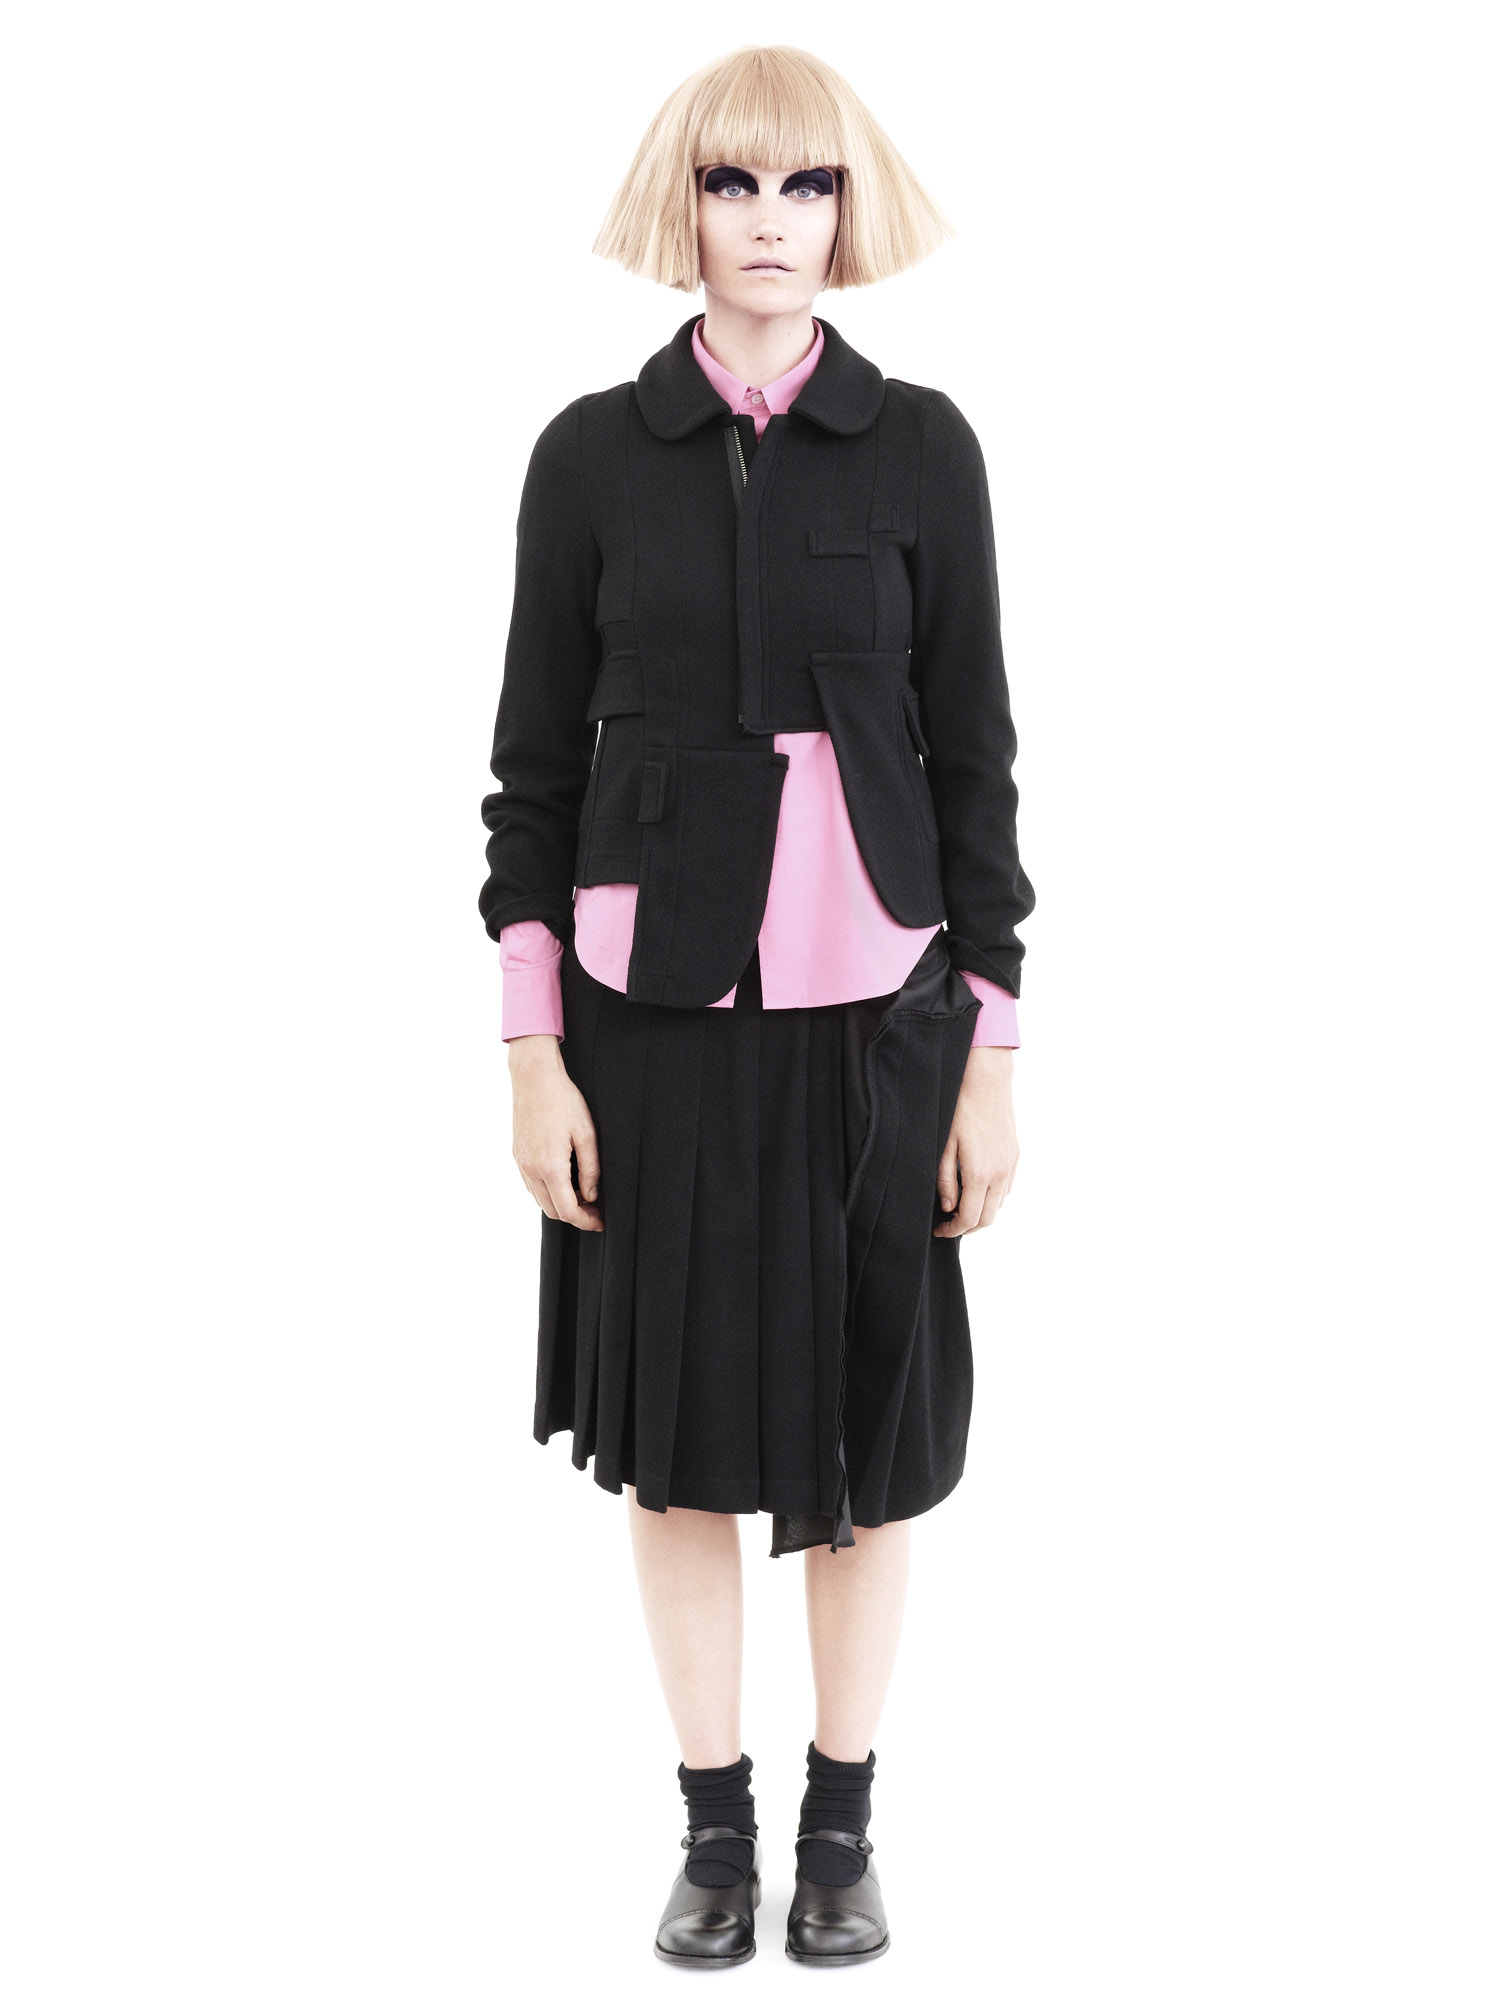 Comme Des Garcons for H&M, Rei Kawakubo, | POPSUGAR Fashion UK